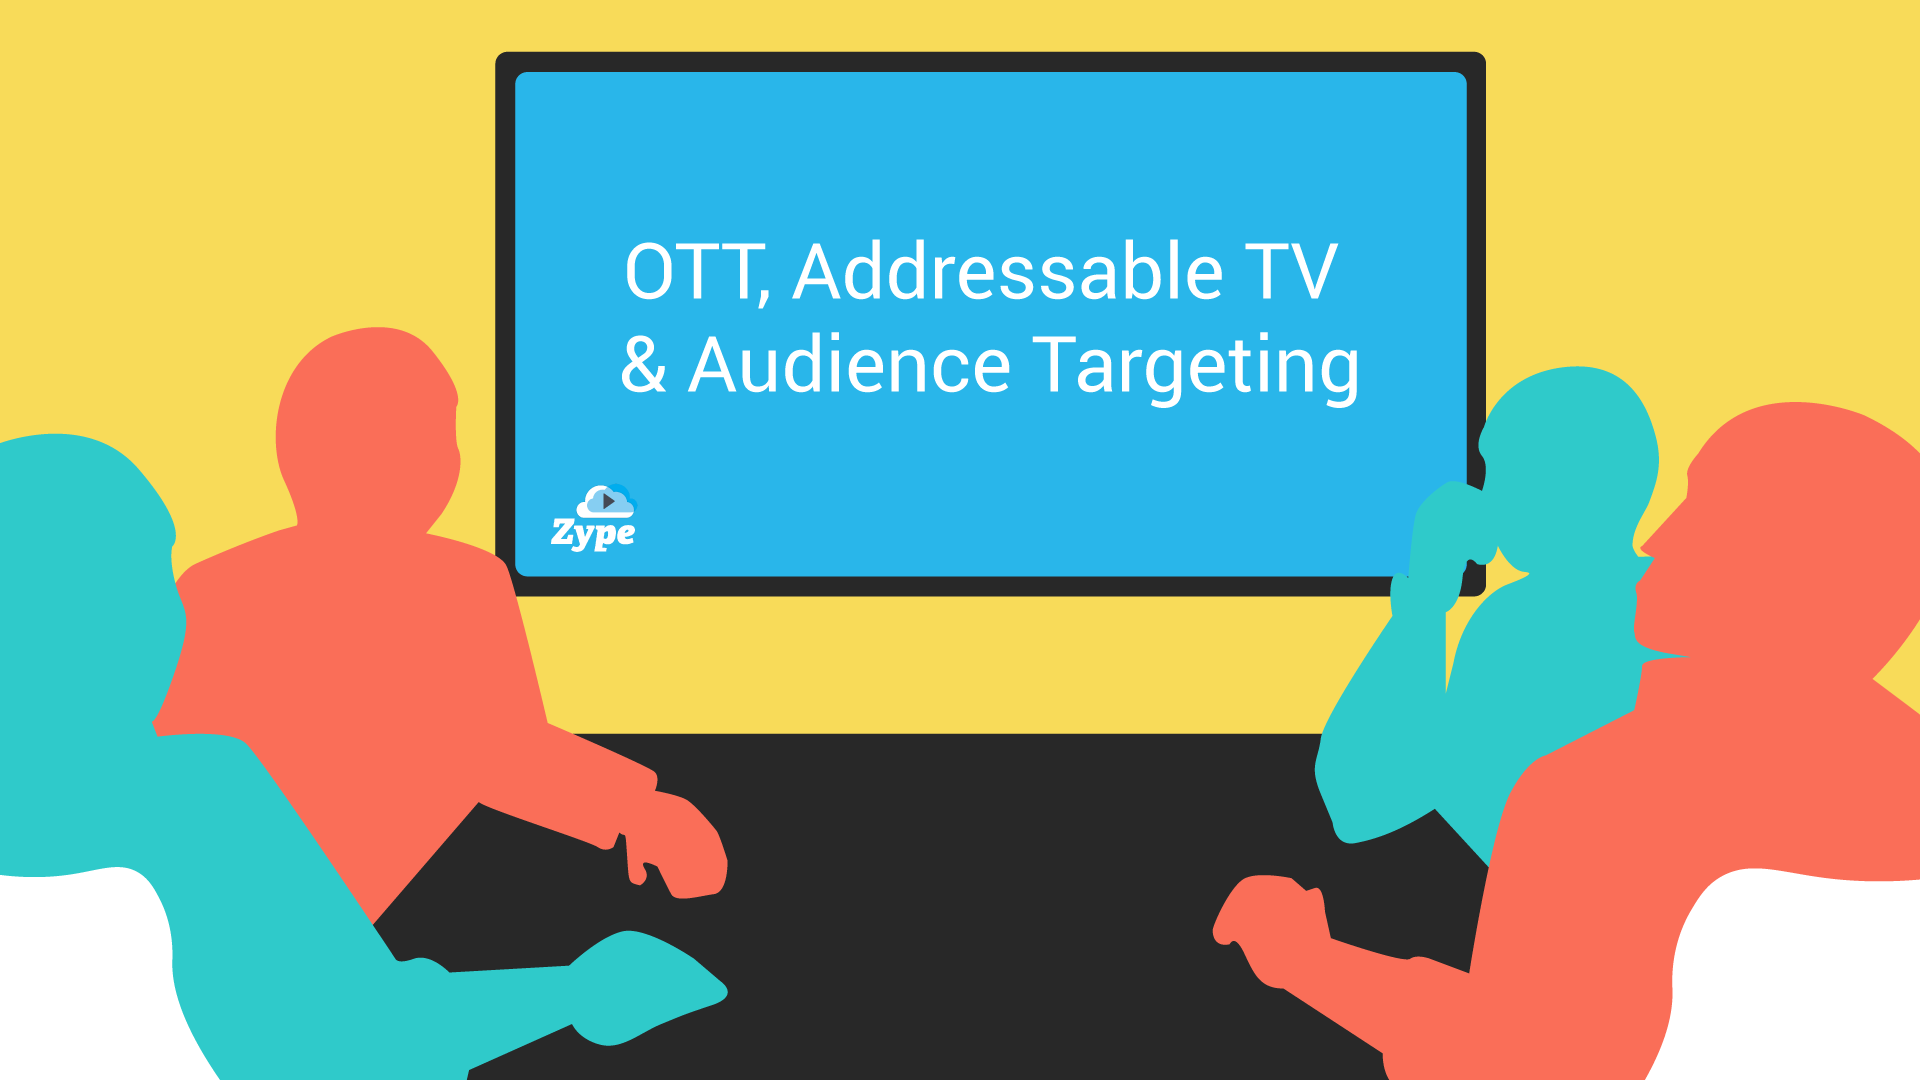 OTT, Addressable TV and Audience Targeting Roundtable Recap